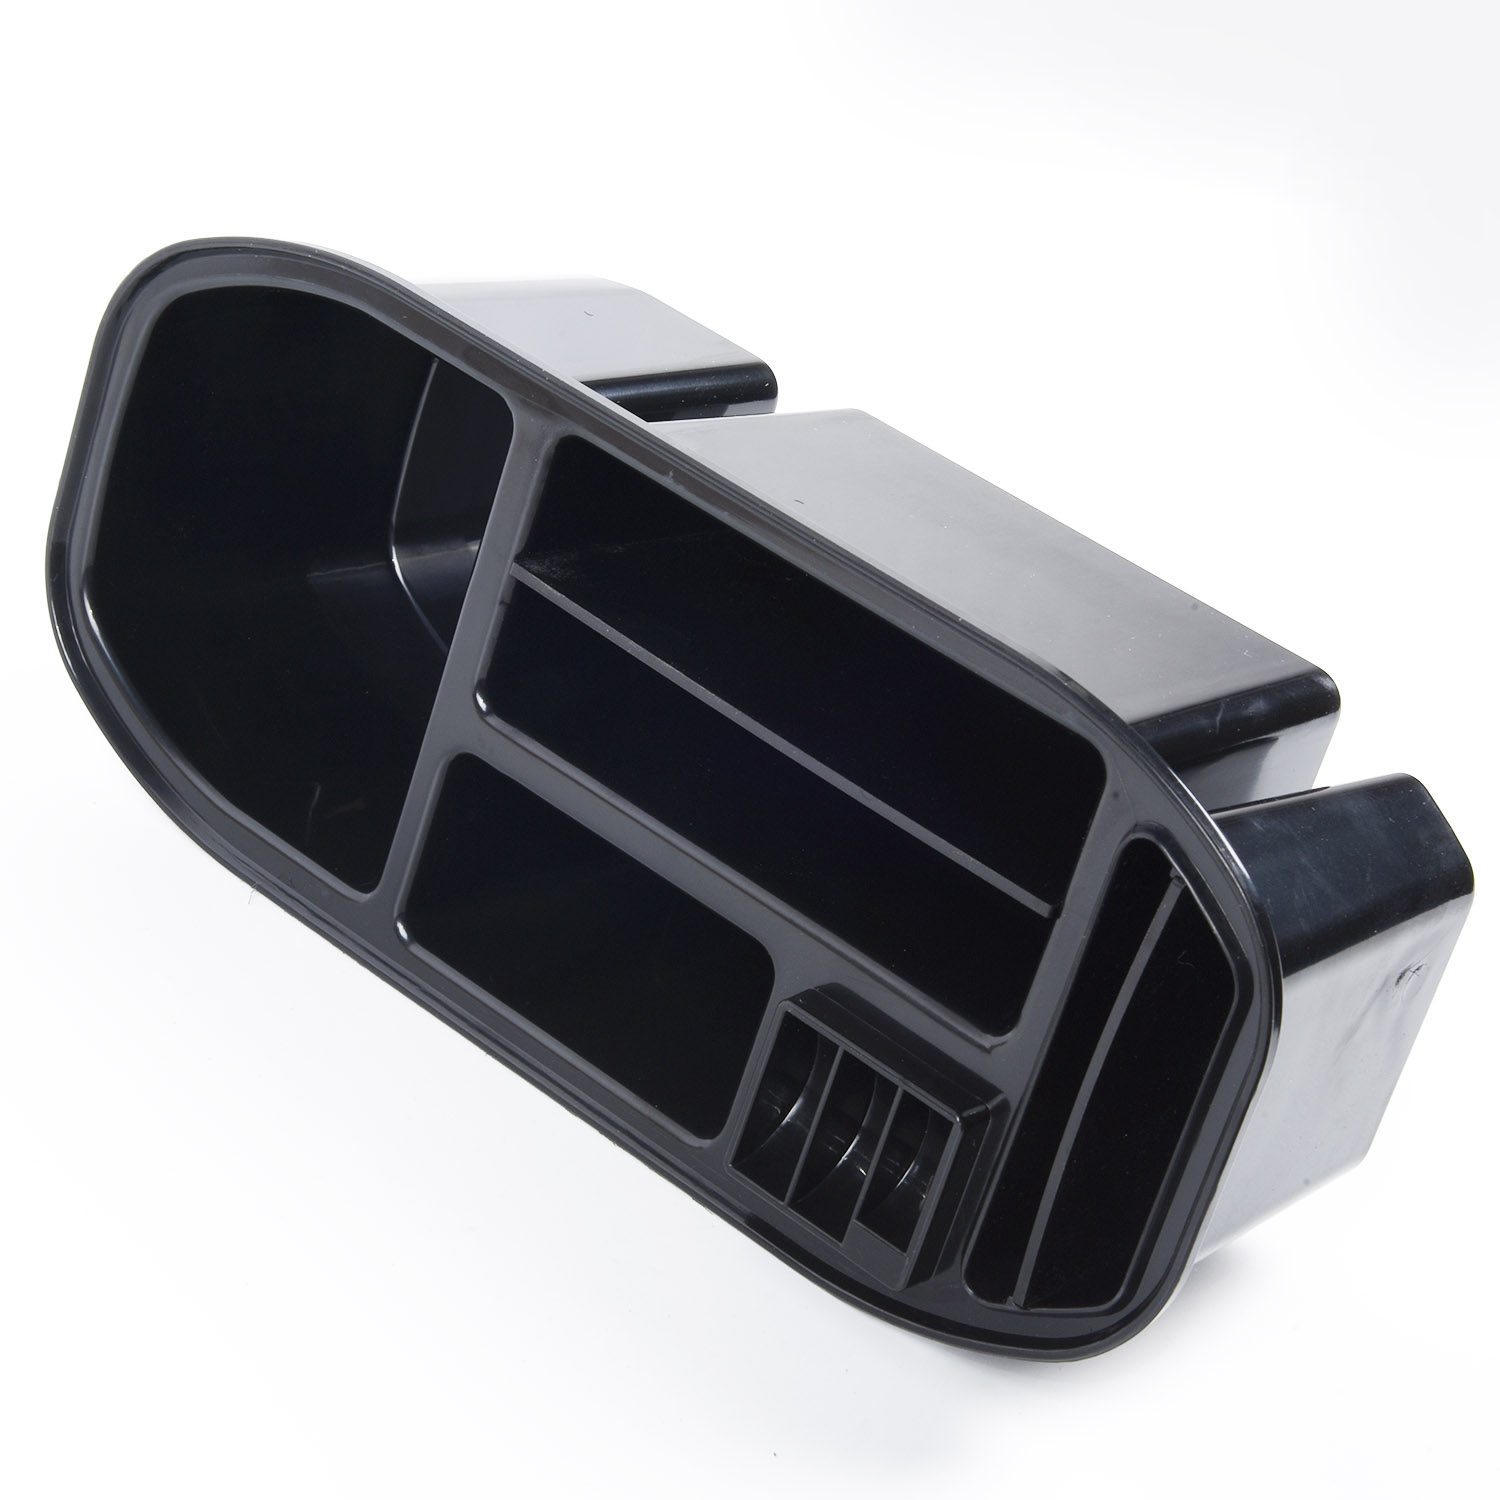 1x Car Auto Water Cup Holder Storage Box Tray Case For Honda Vezel HR-V HRV 2019